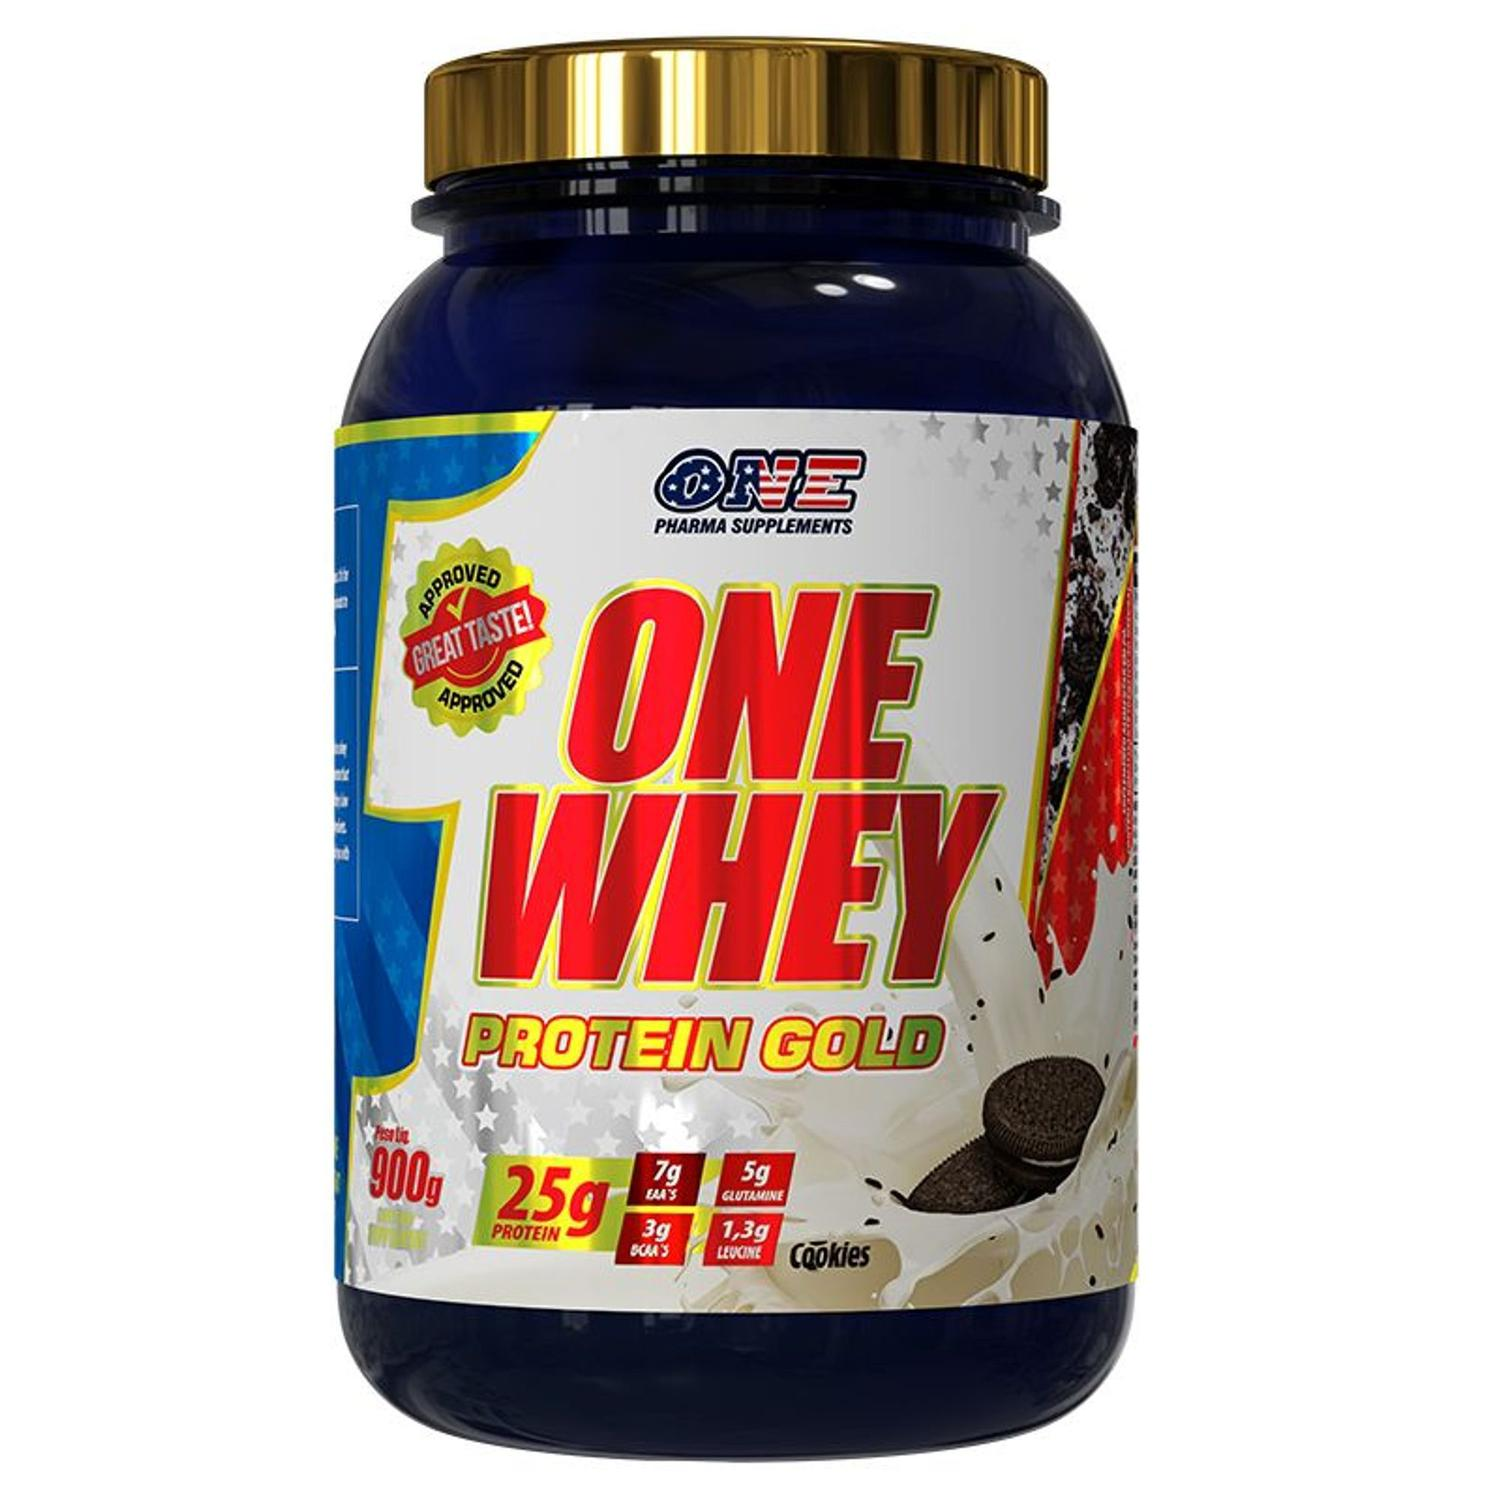 ONE WHEY PROTEIN GOLD (900G) - ONE PHARMA SUPPLEMENTS